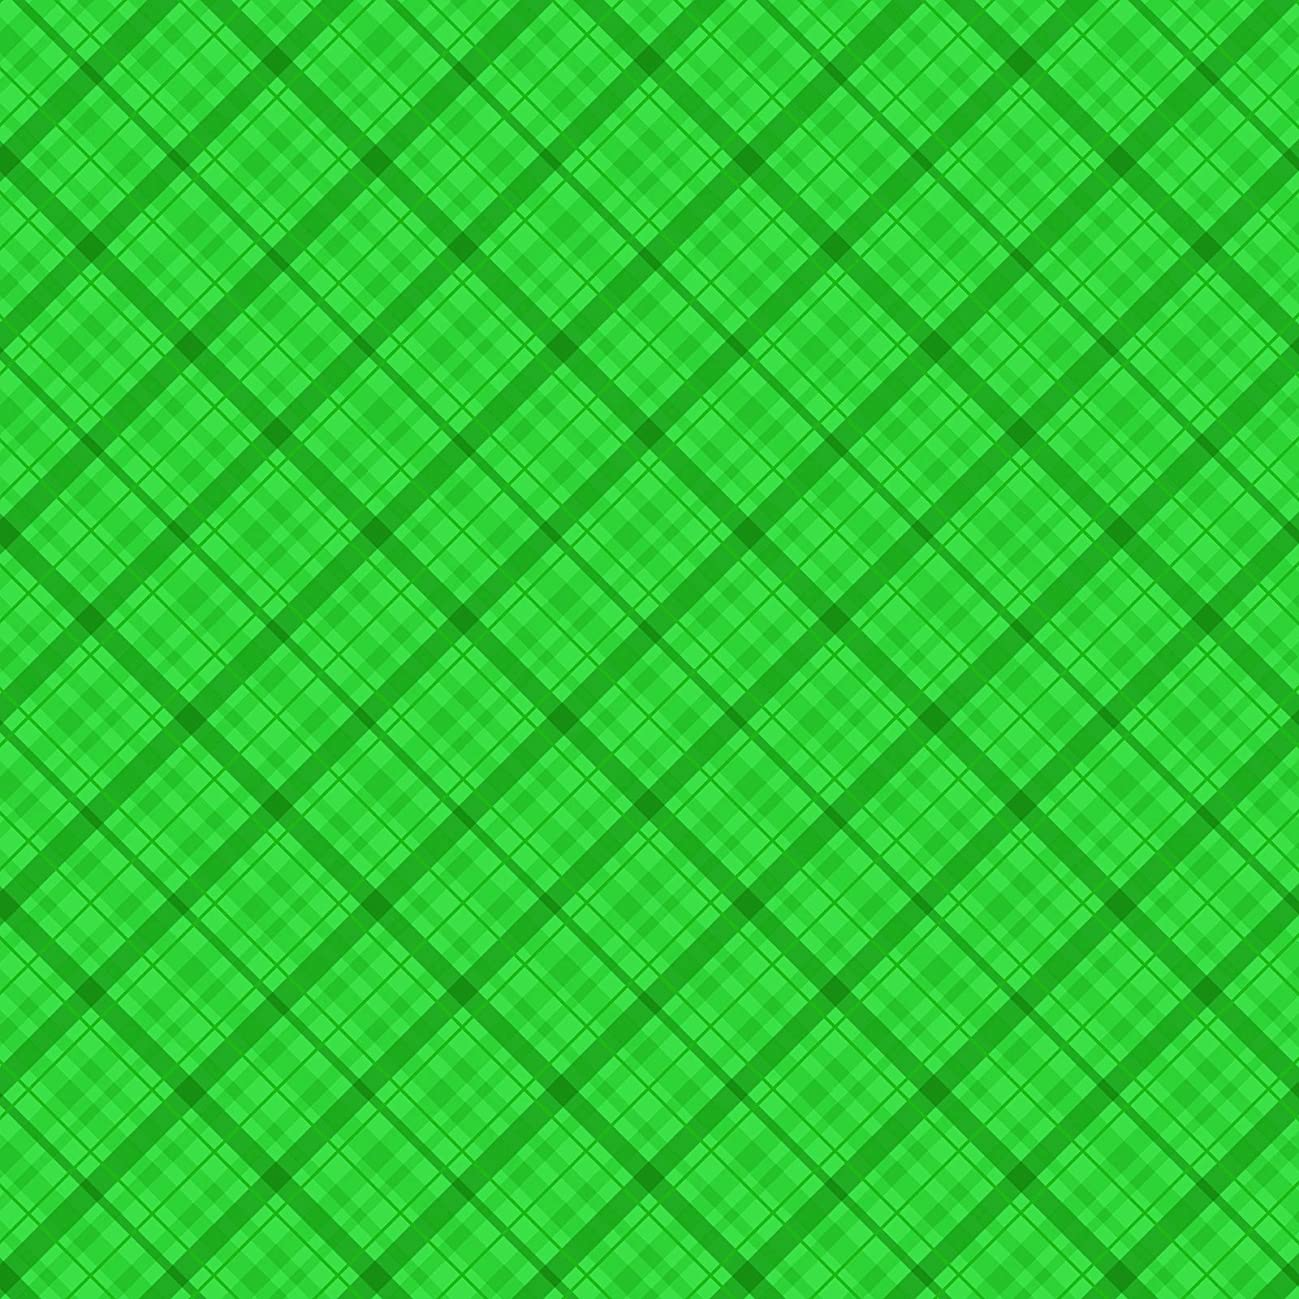 American Crafts Core'dinations 12 Pack of 12 x 12 Inch Patterned Paper Dark Green Plaid,